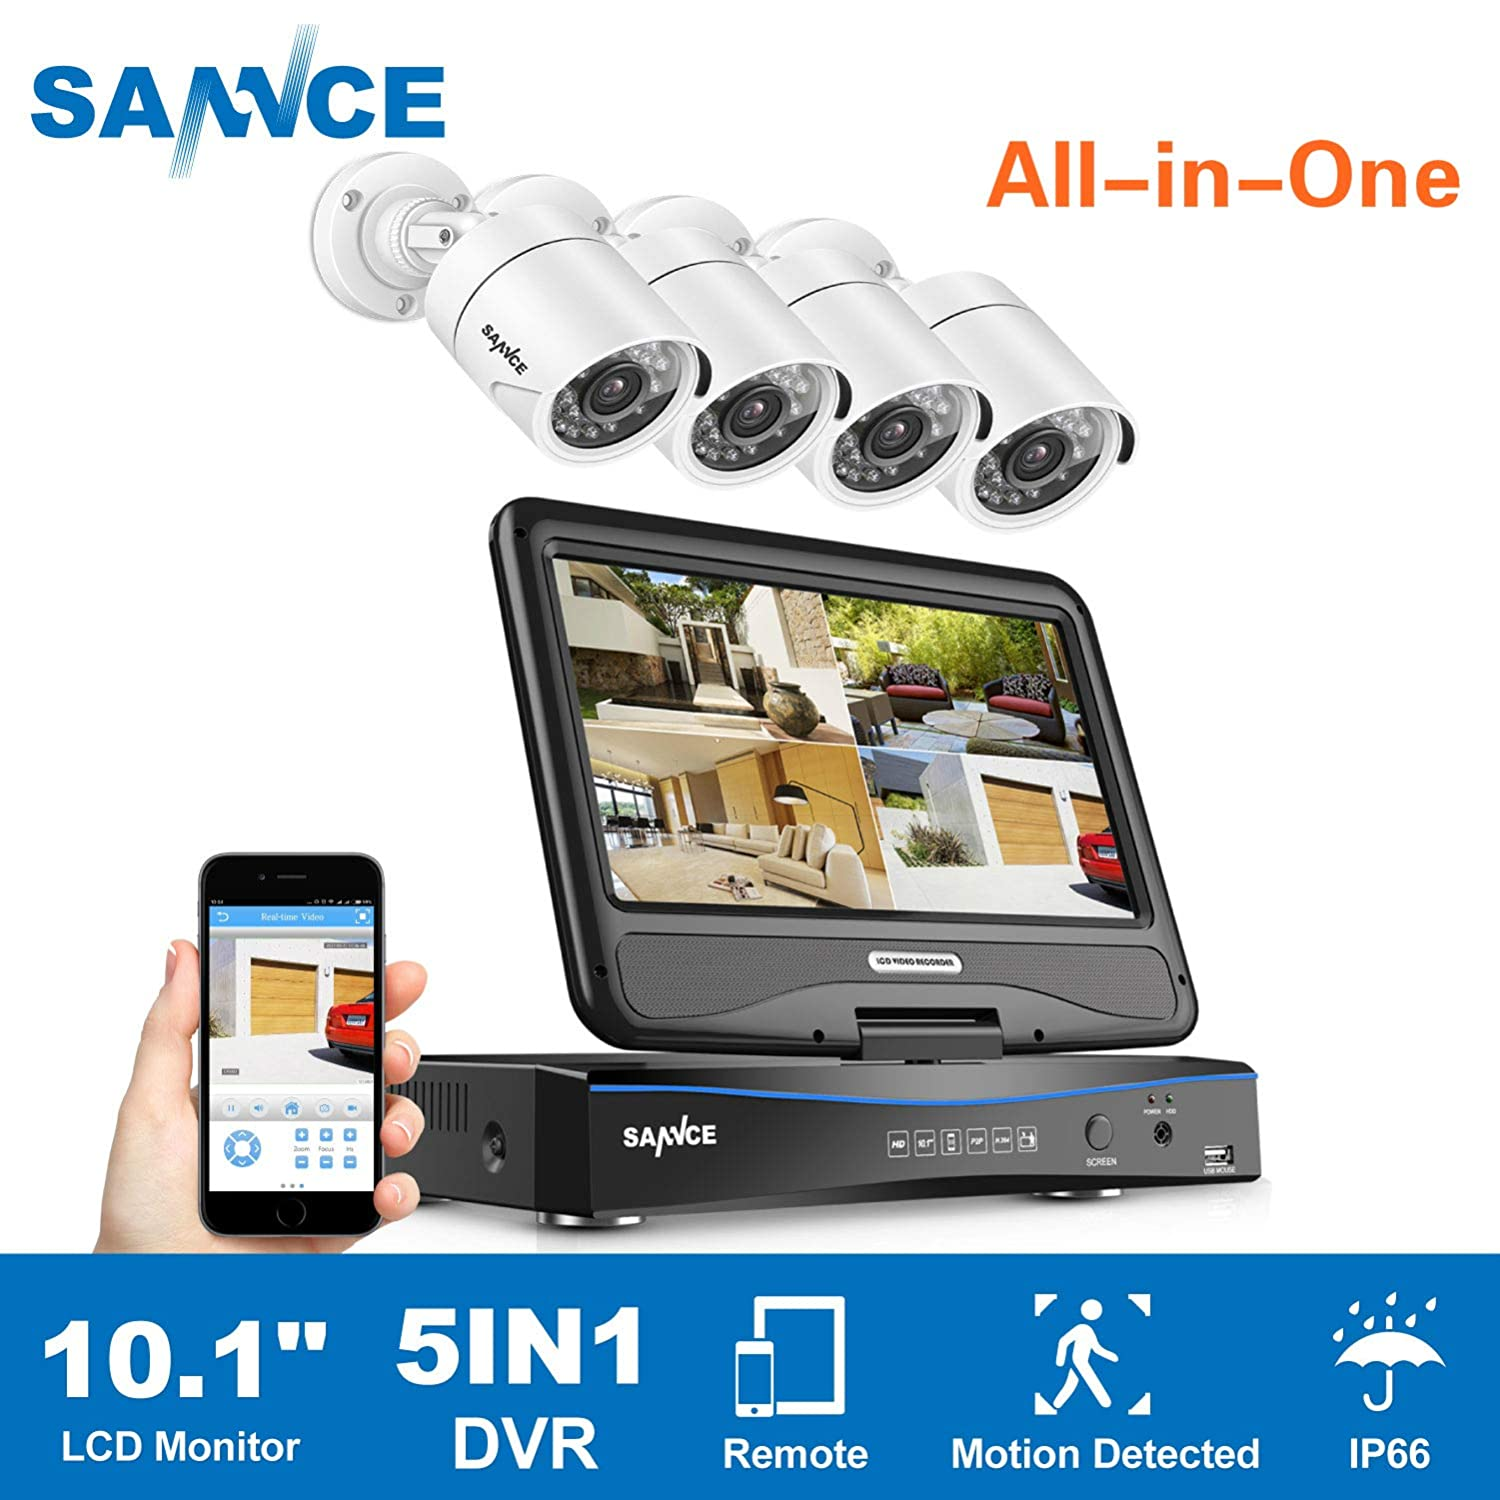 True All-in-One Home Security Camera System with Built-in 10.1 LCD Monitor,SANNCE 4CH 720P Surveillance DVR Recorder with 4Pcs Outdoor 66ft Night Vision Cameras, Easy Remote Access No HDD Included